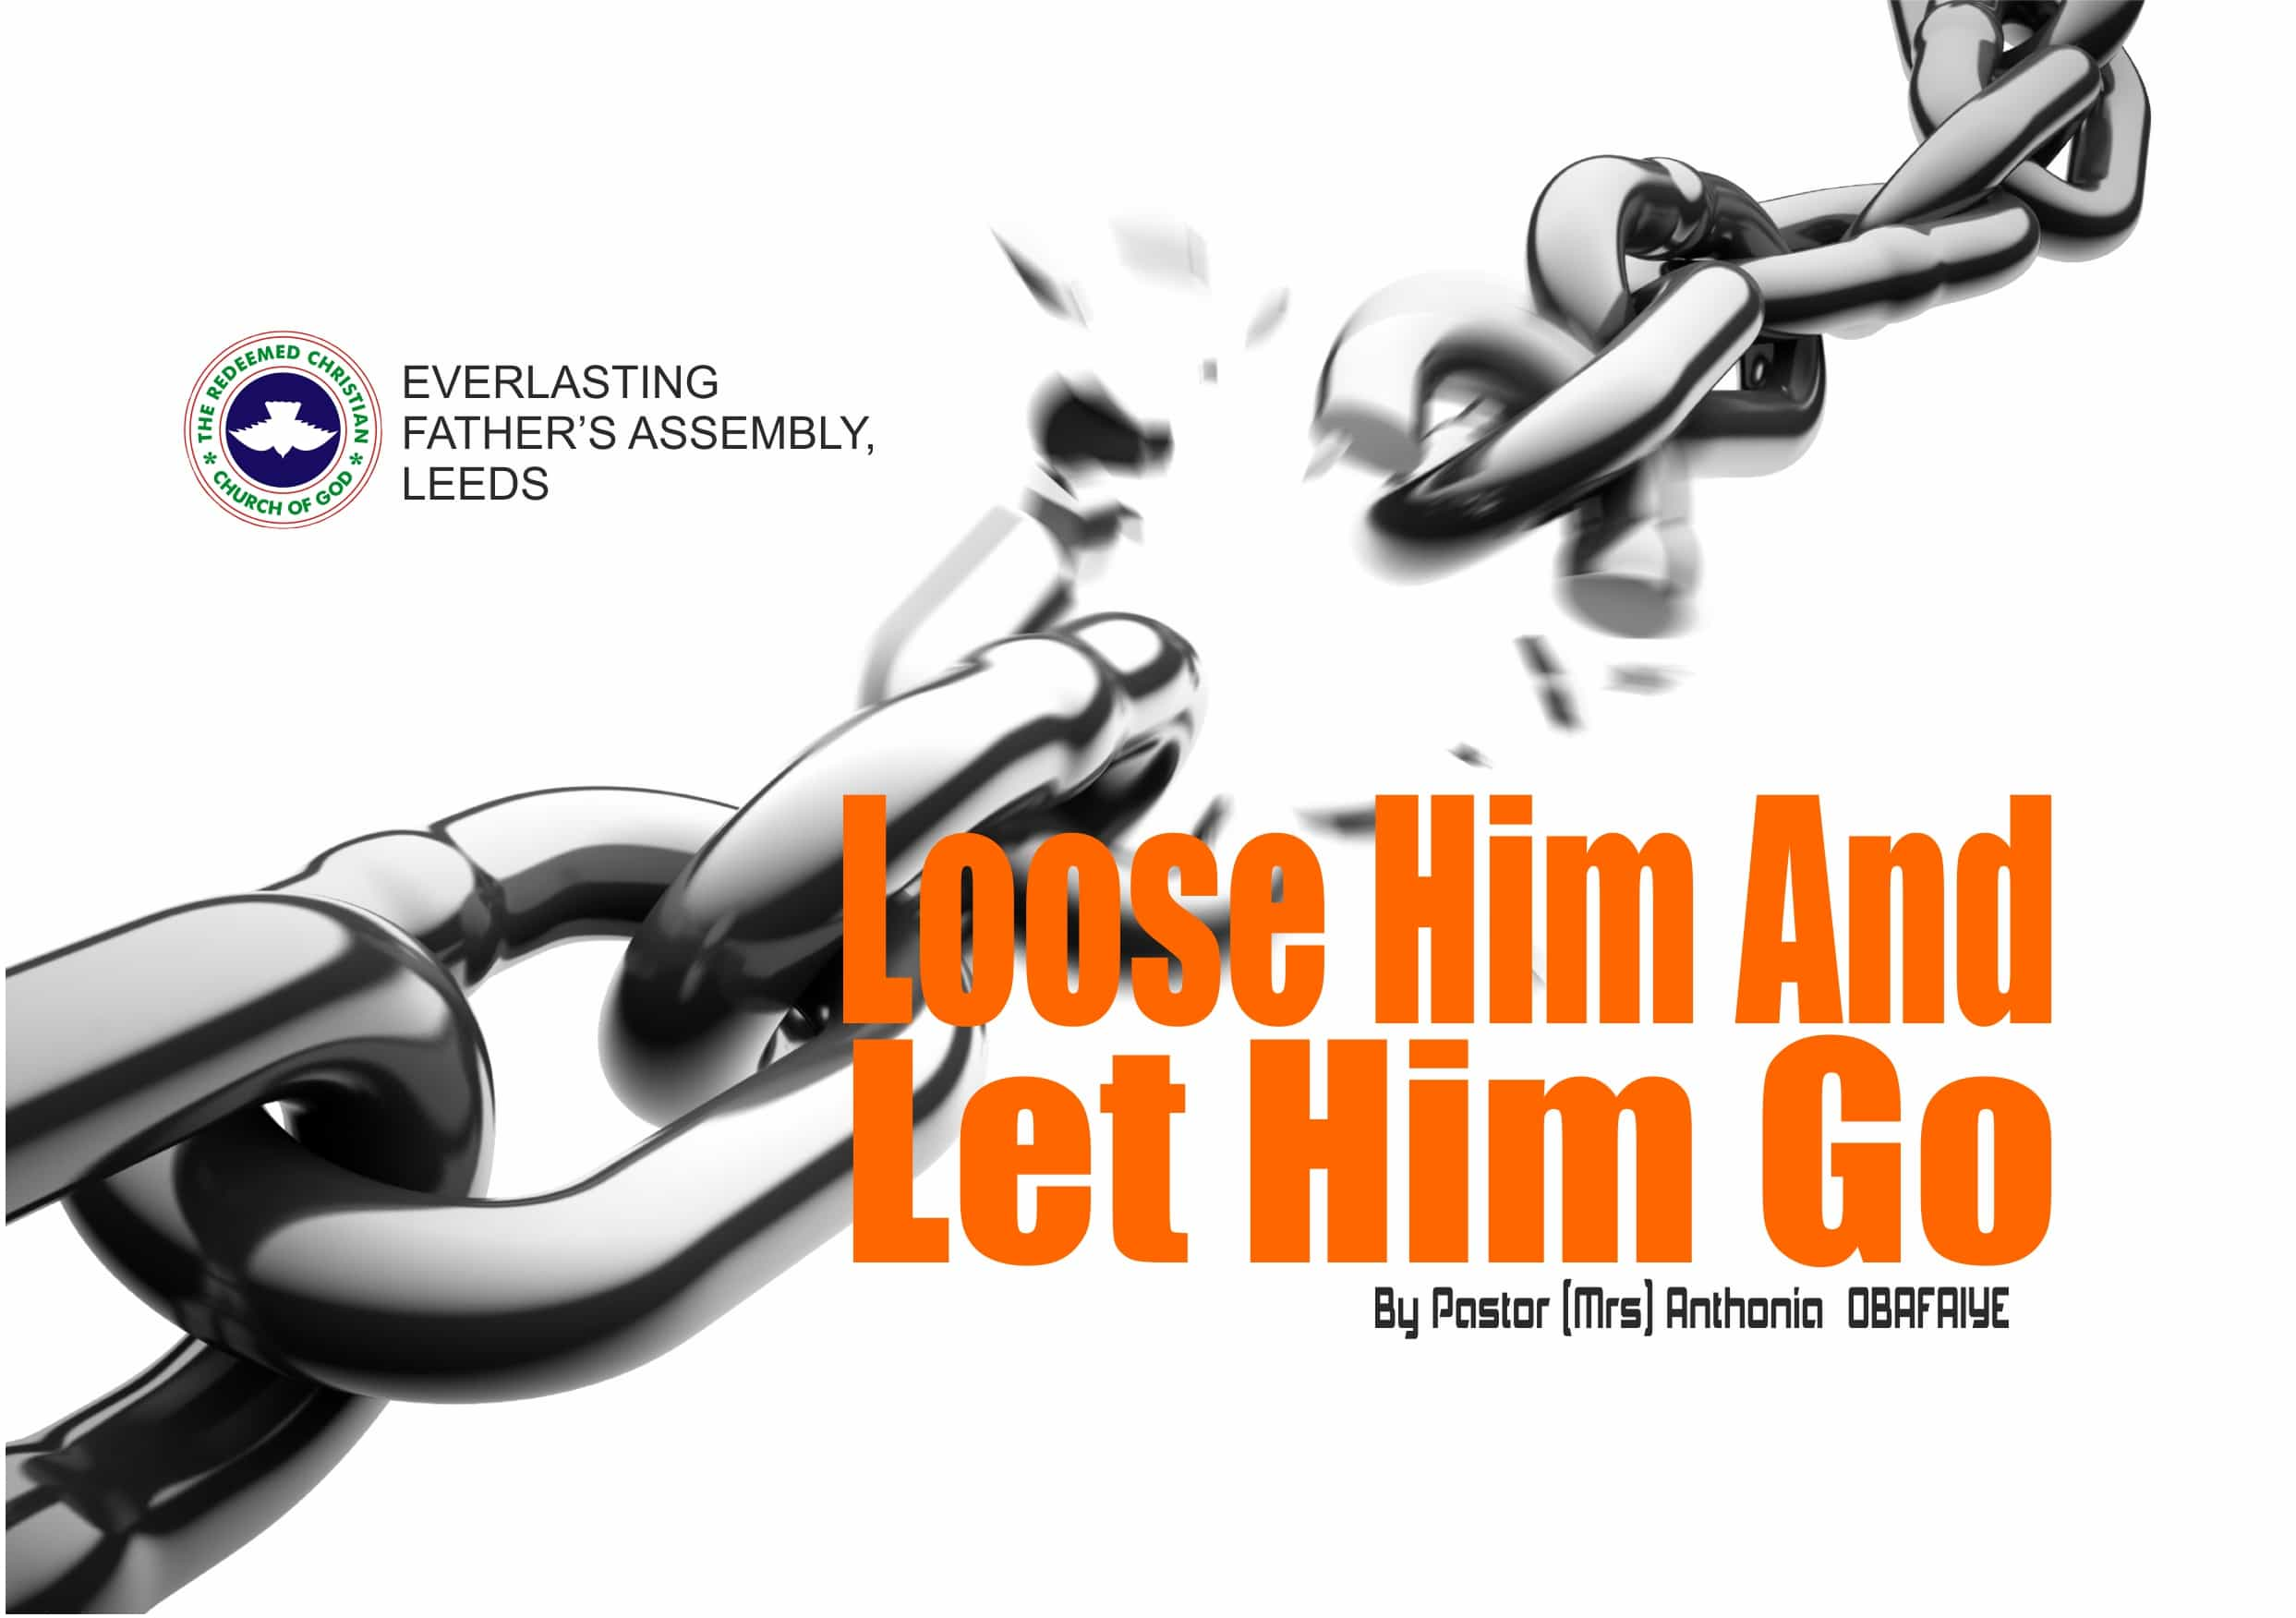 Loose Him And Let Him Go! by Pastor (Mrs) Anthonia Obafaiye